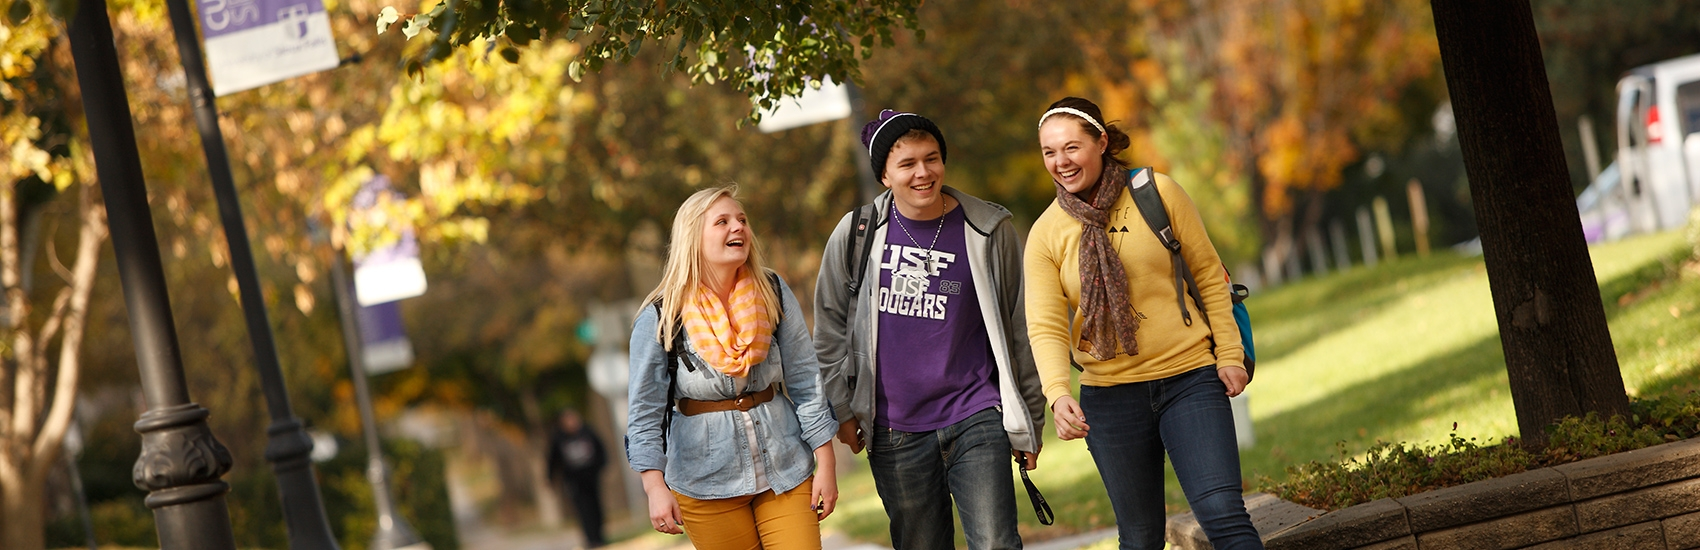 USF students walking on campus in the fall.